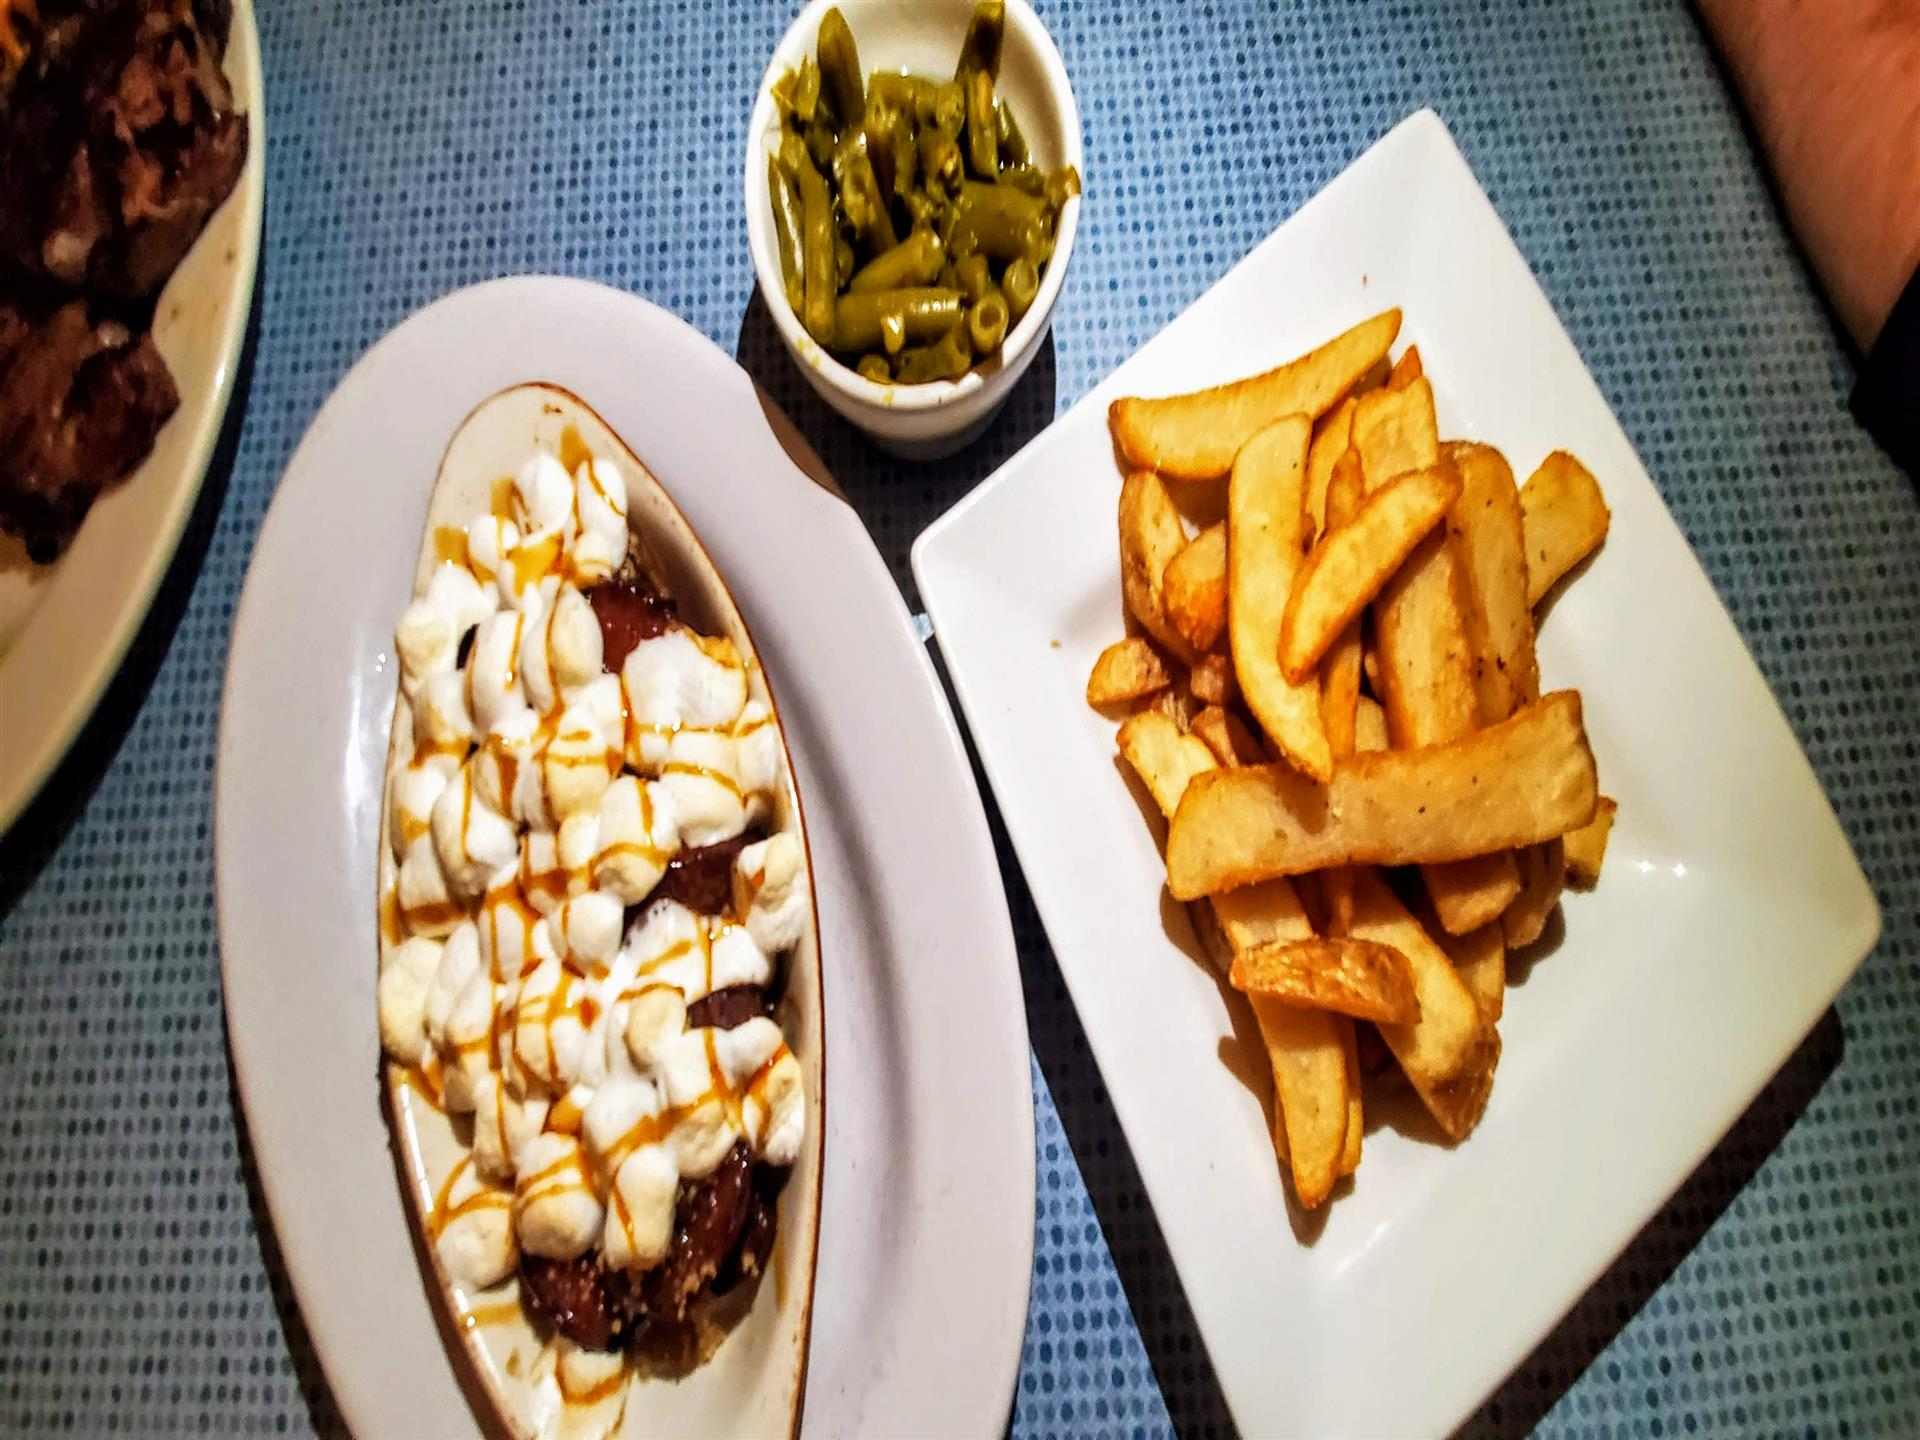 Sides to choose from - loaded sweet potatoes, steak fries, green beans